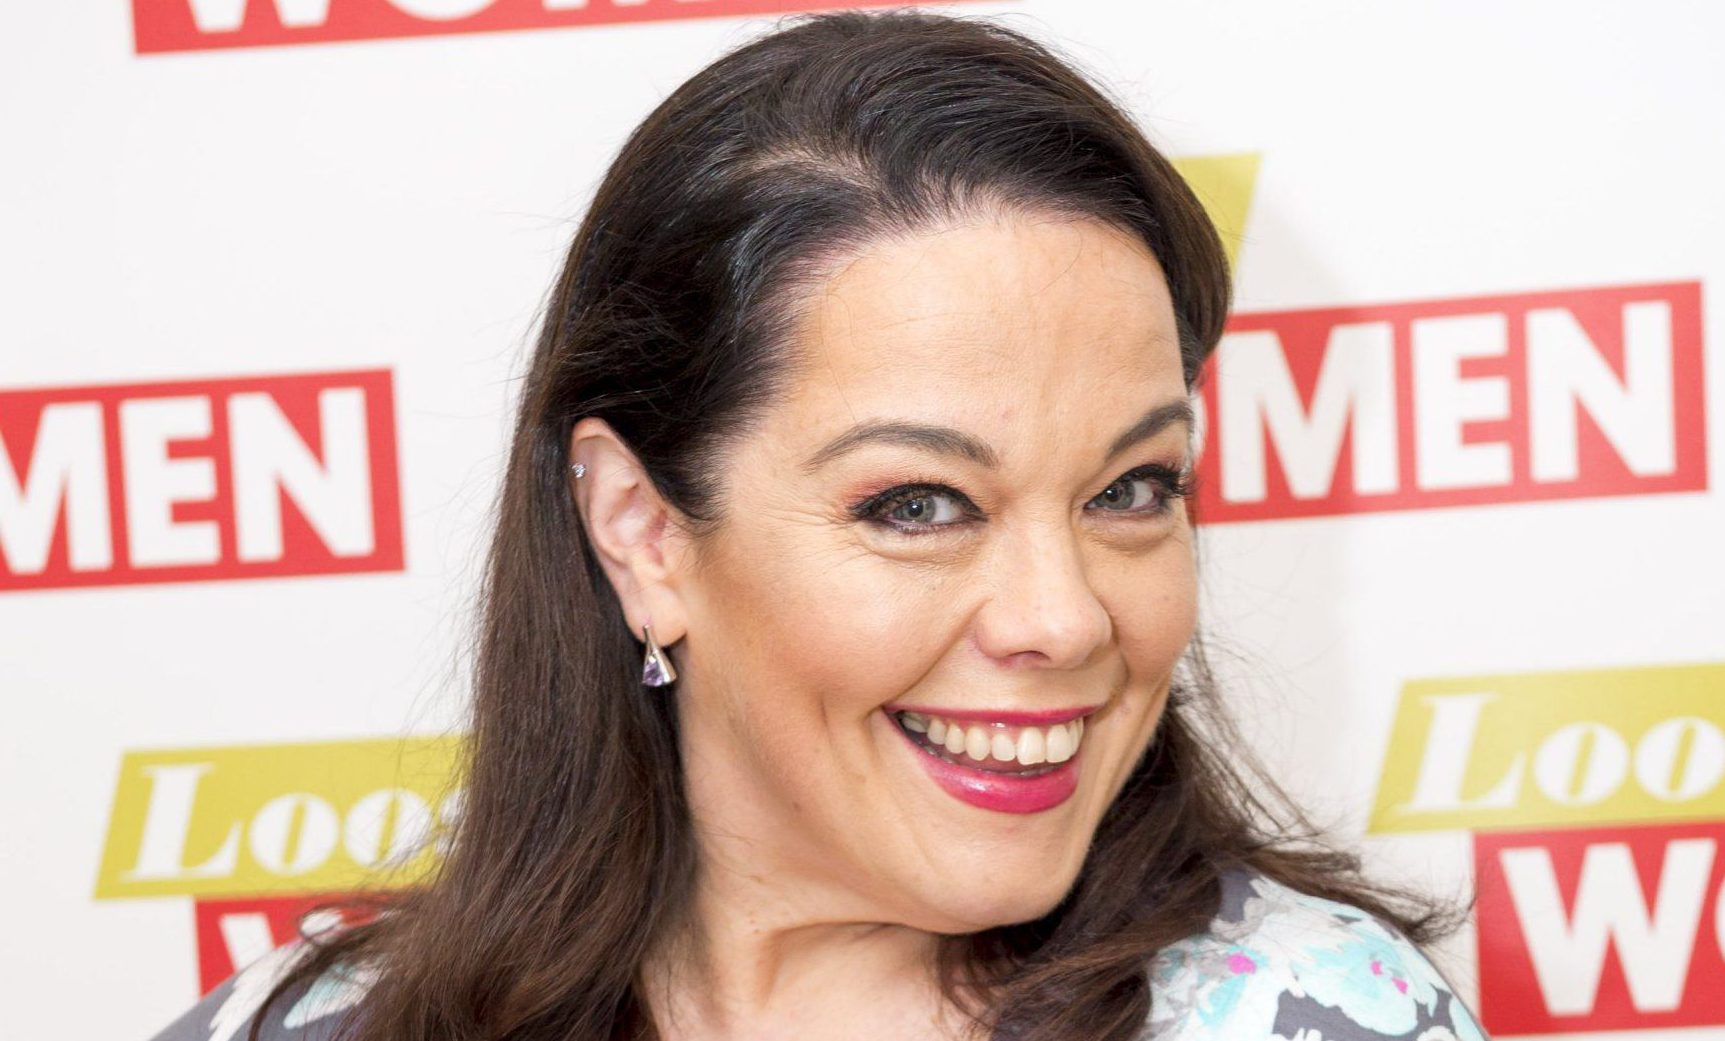 Emmerdale and Loose Women star Lisa Riley is up for a Coronation Street role